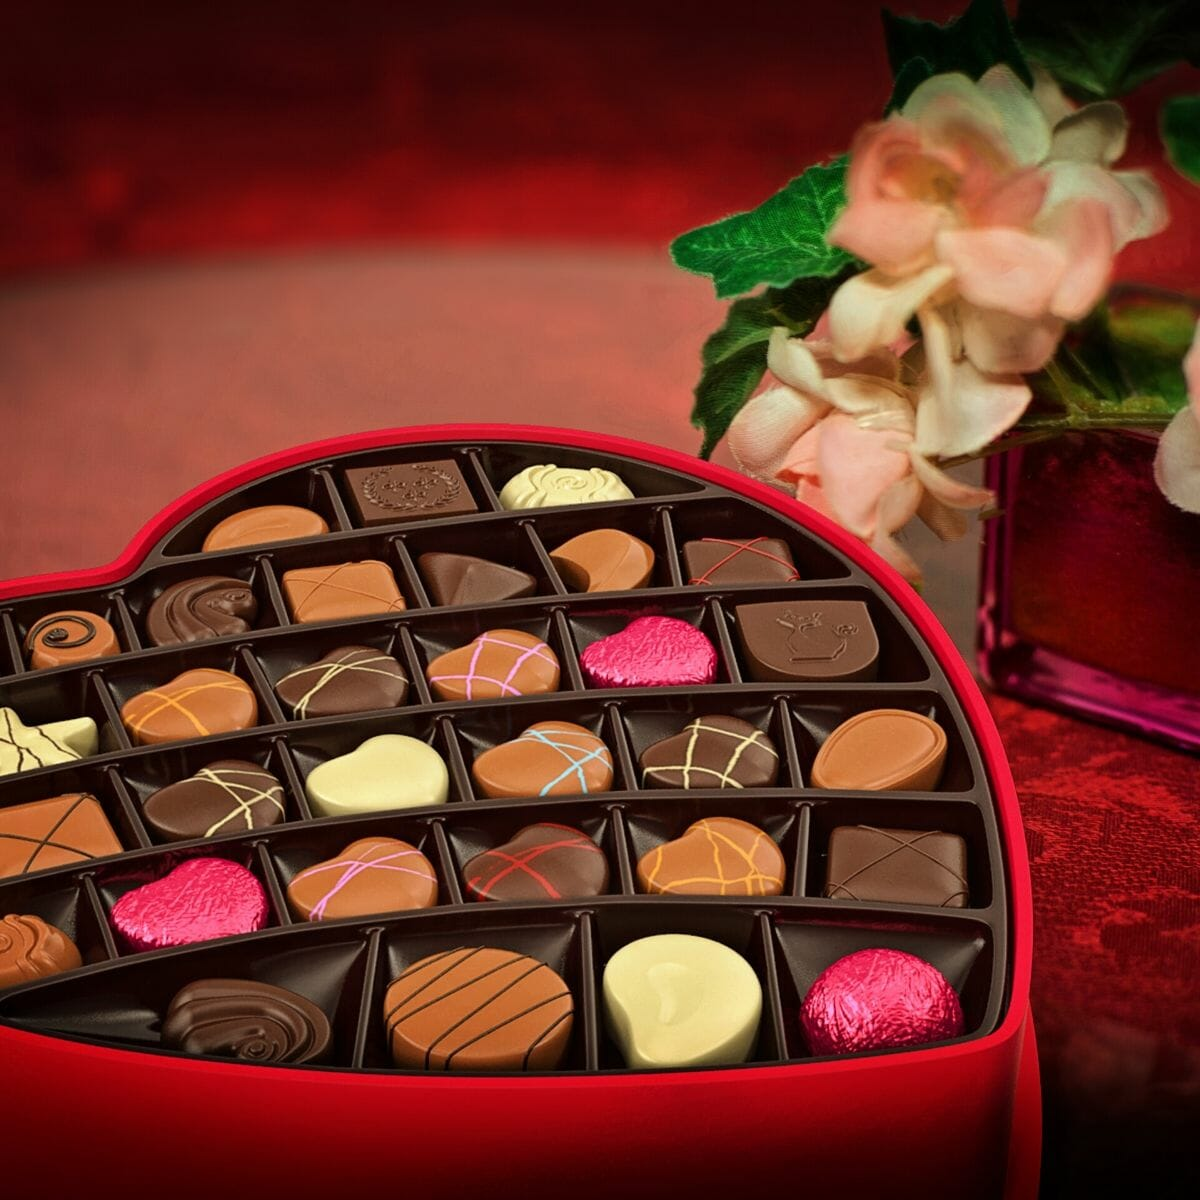 valentine's day chocolates in a heart shaped box